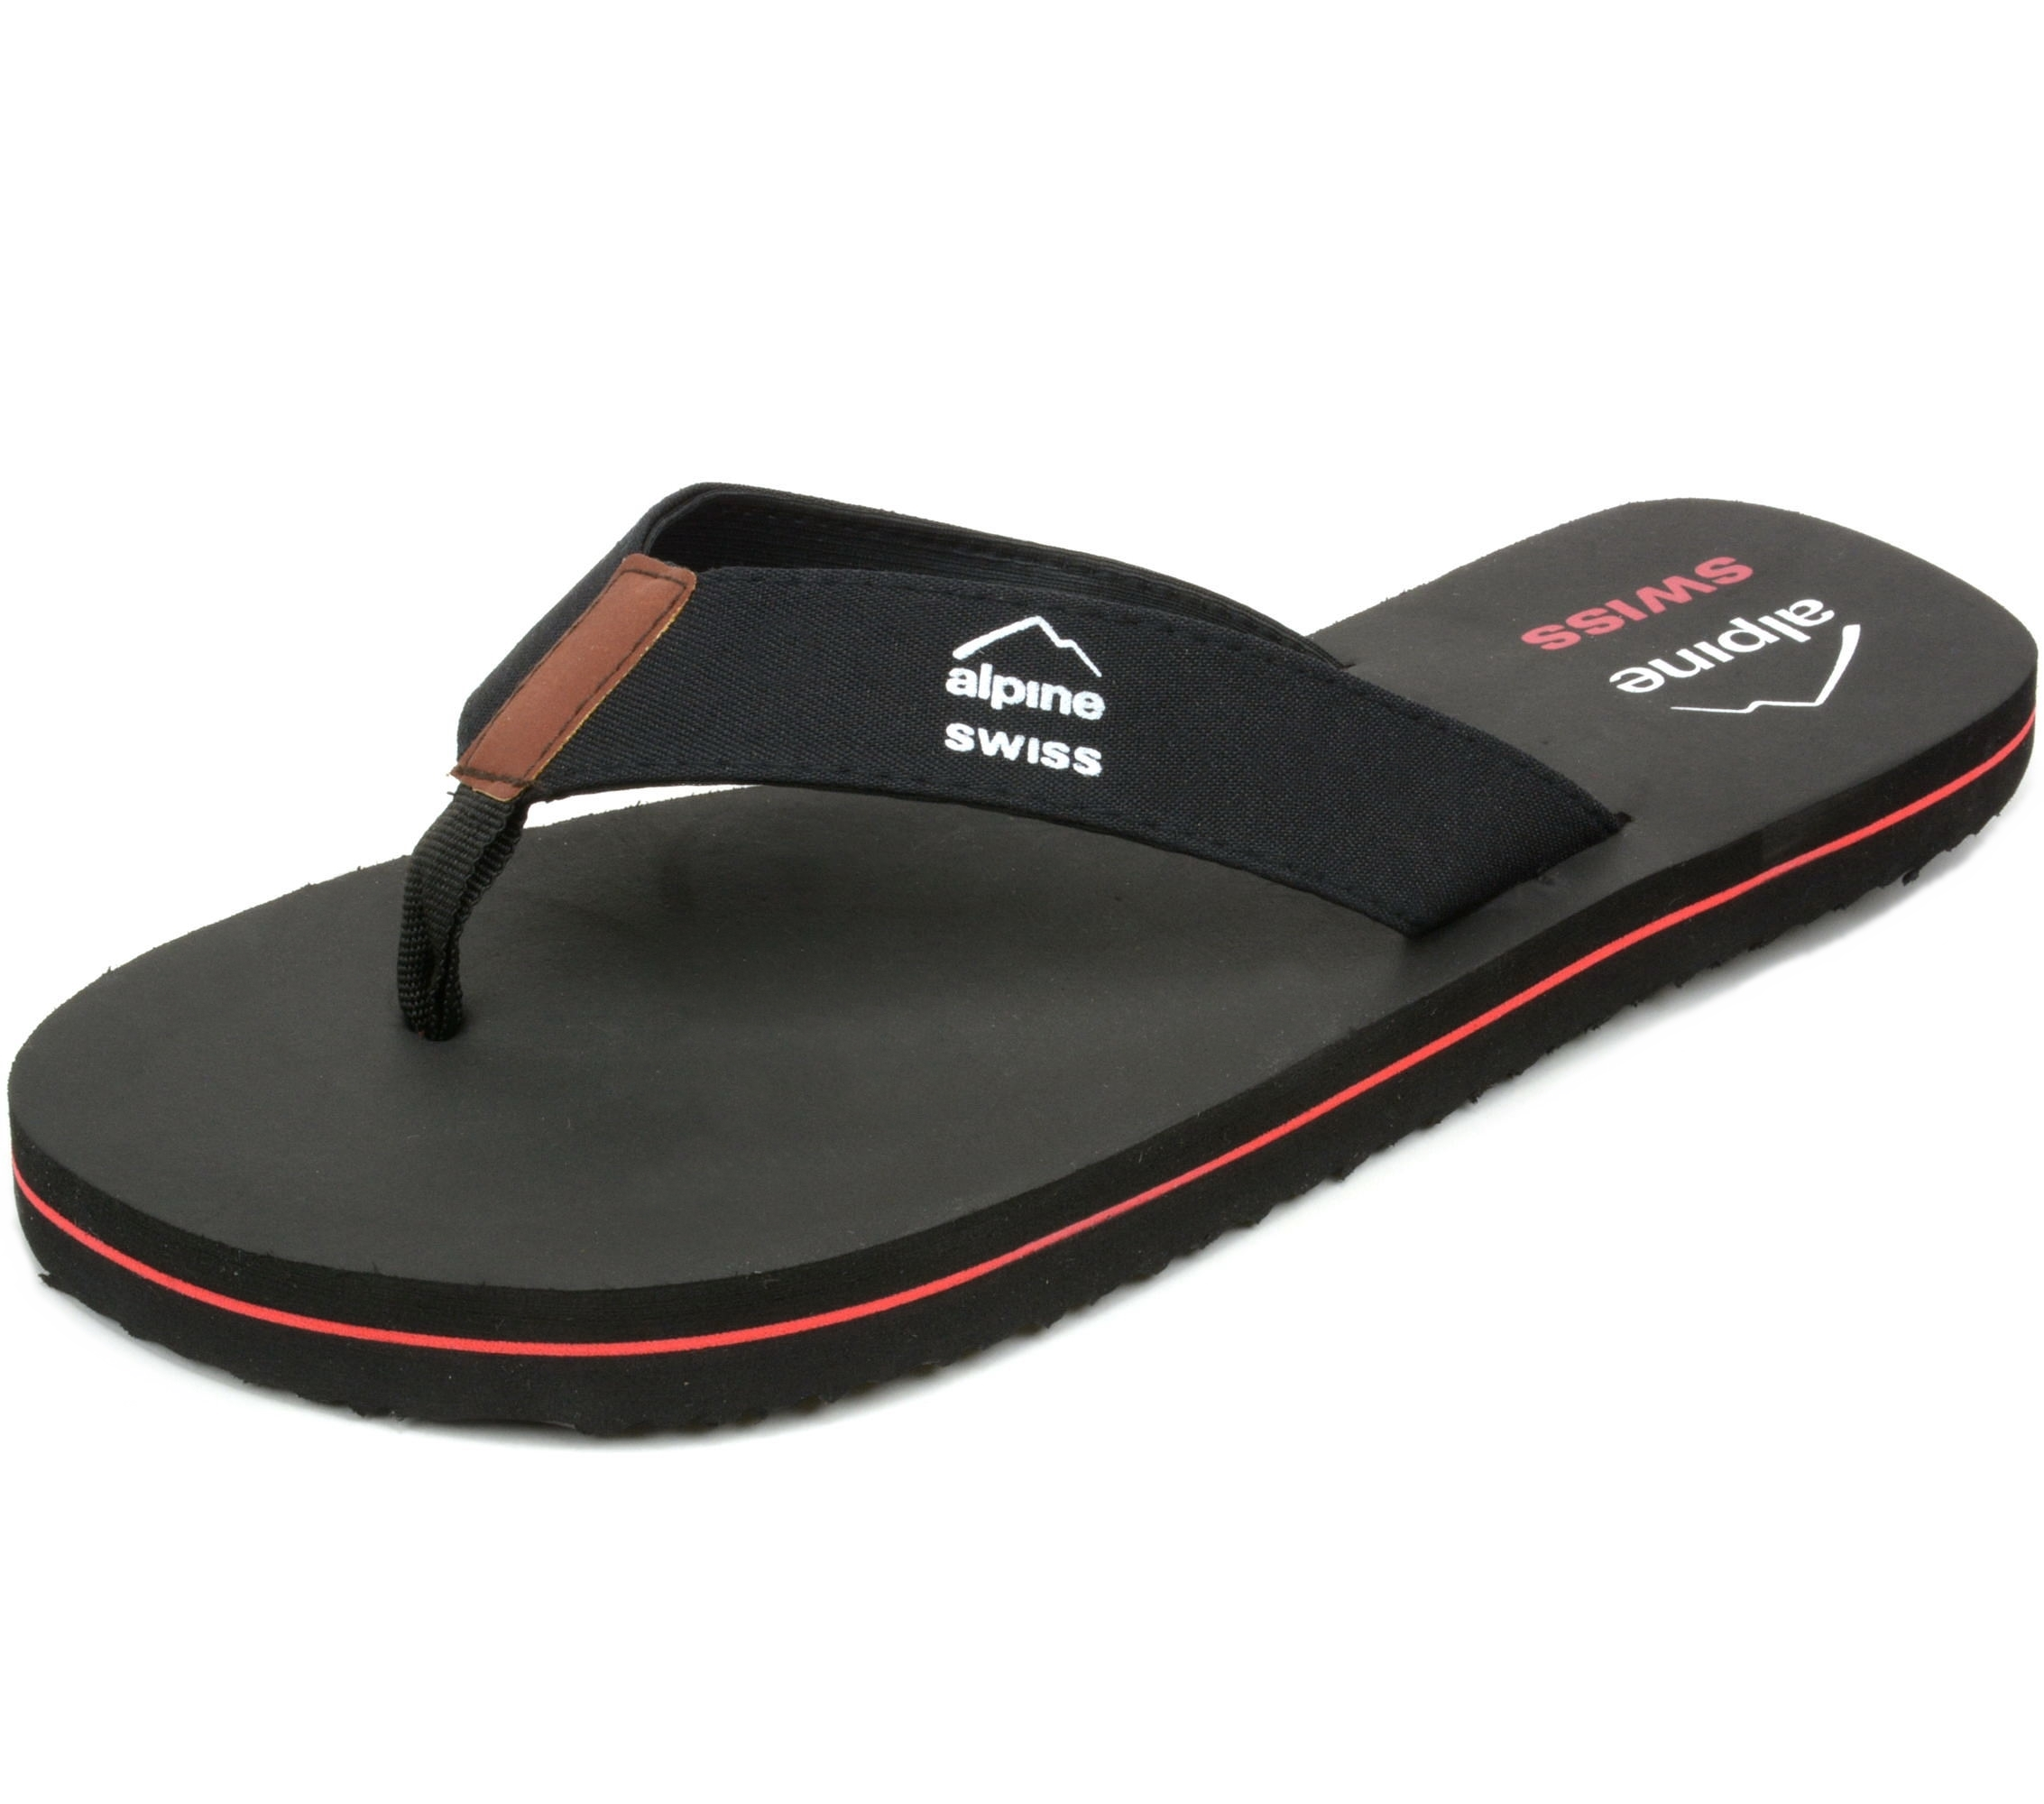 e1de50b0c307ac Alpine Swiss Mens Flip Flops Beach Sandals Lightweight EVA Sole Comfort  Thongs